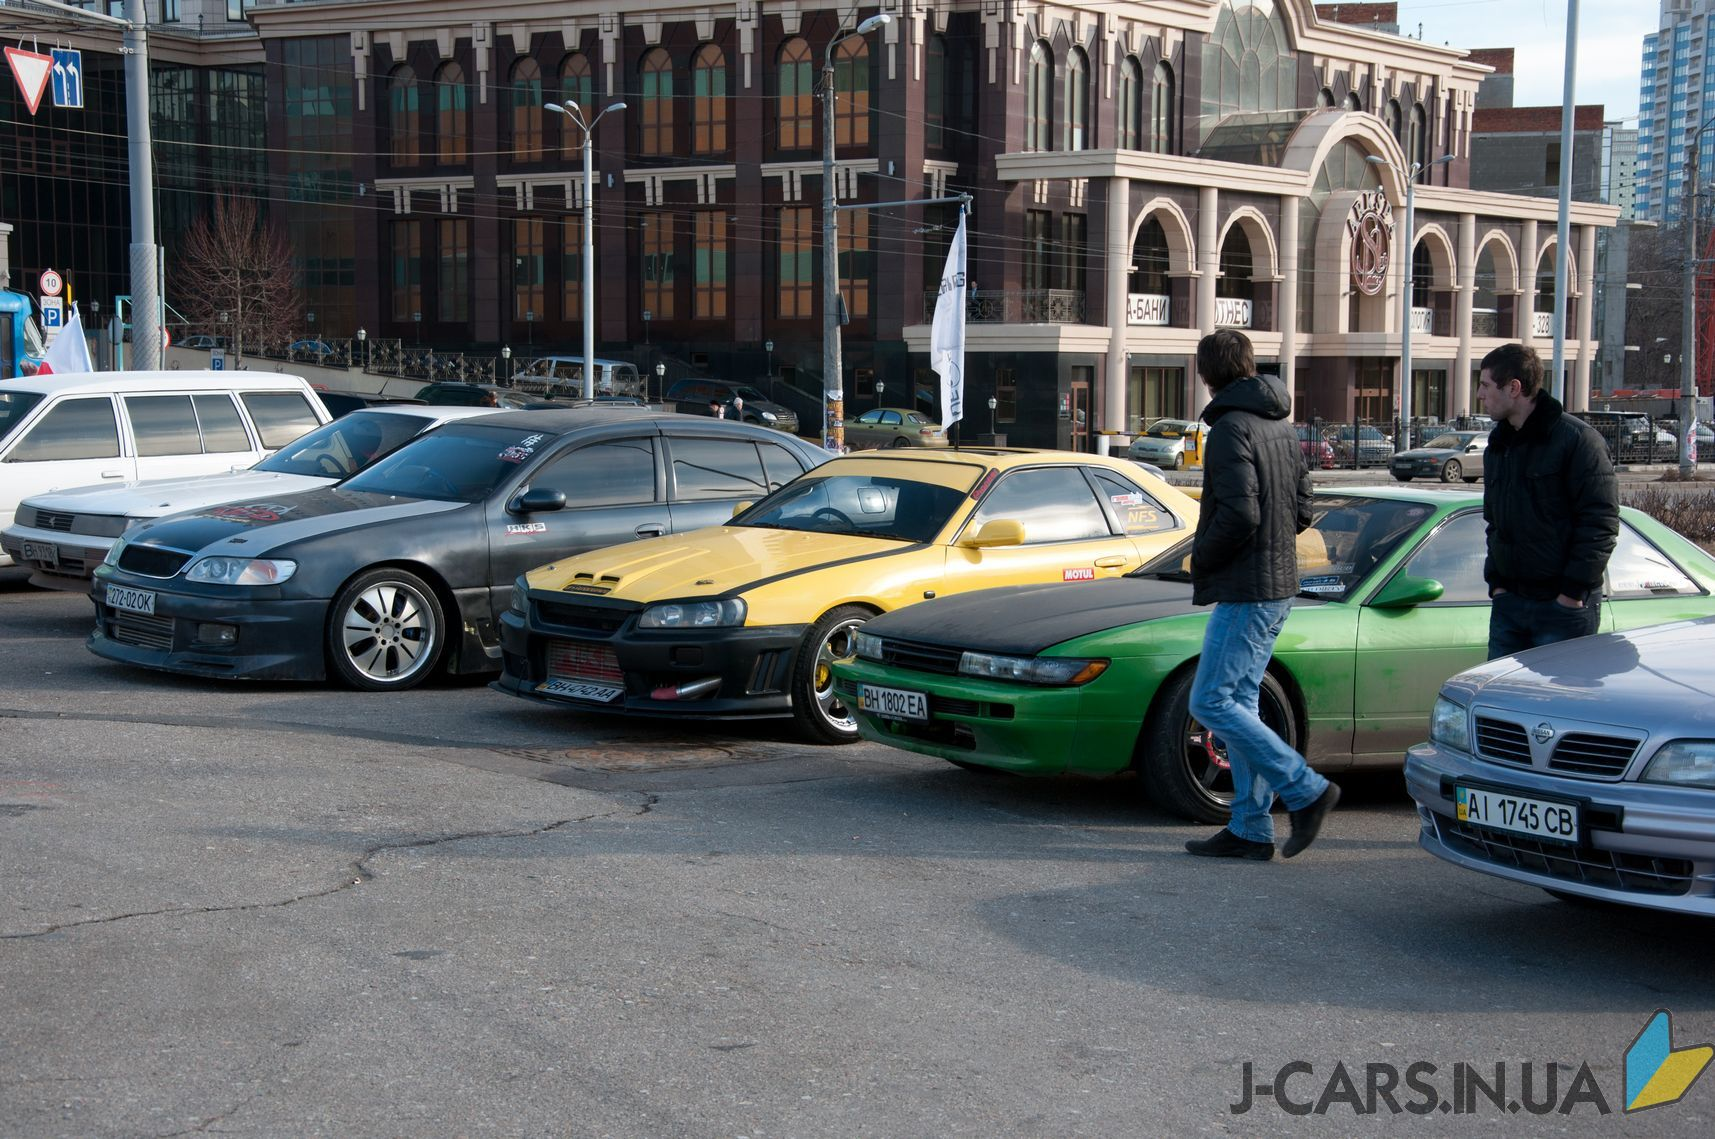 j-cars.in.ua skyline